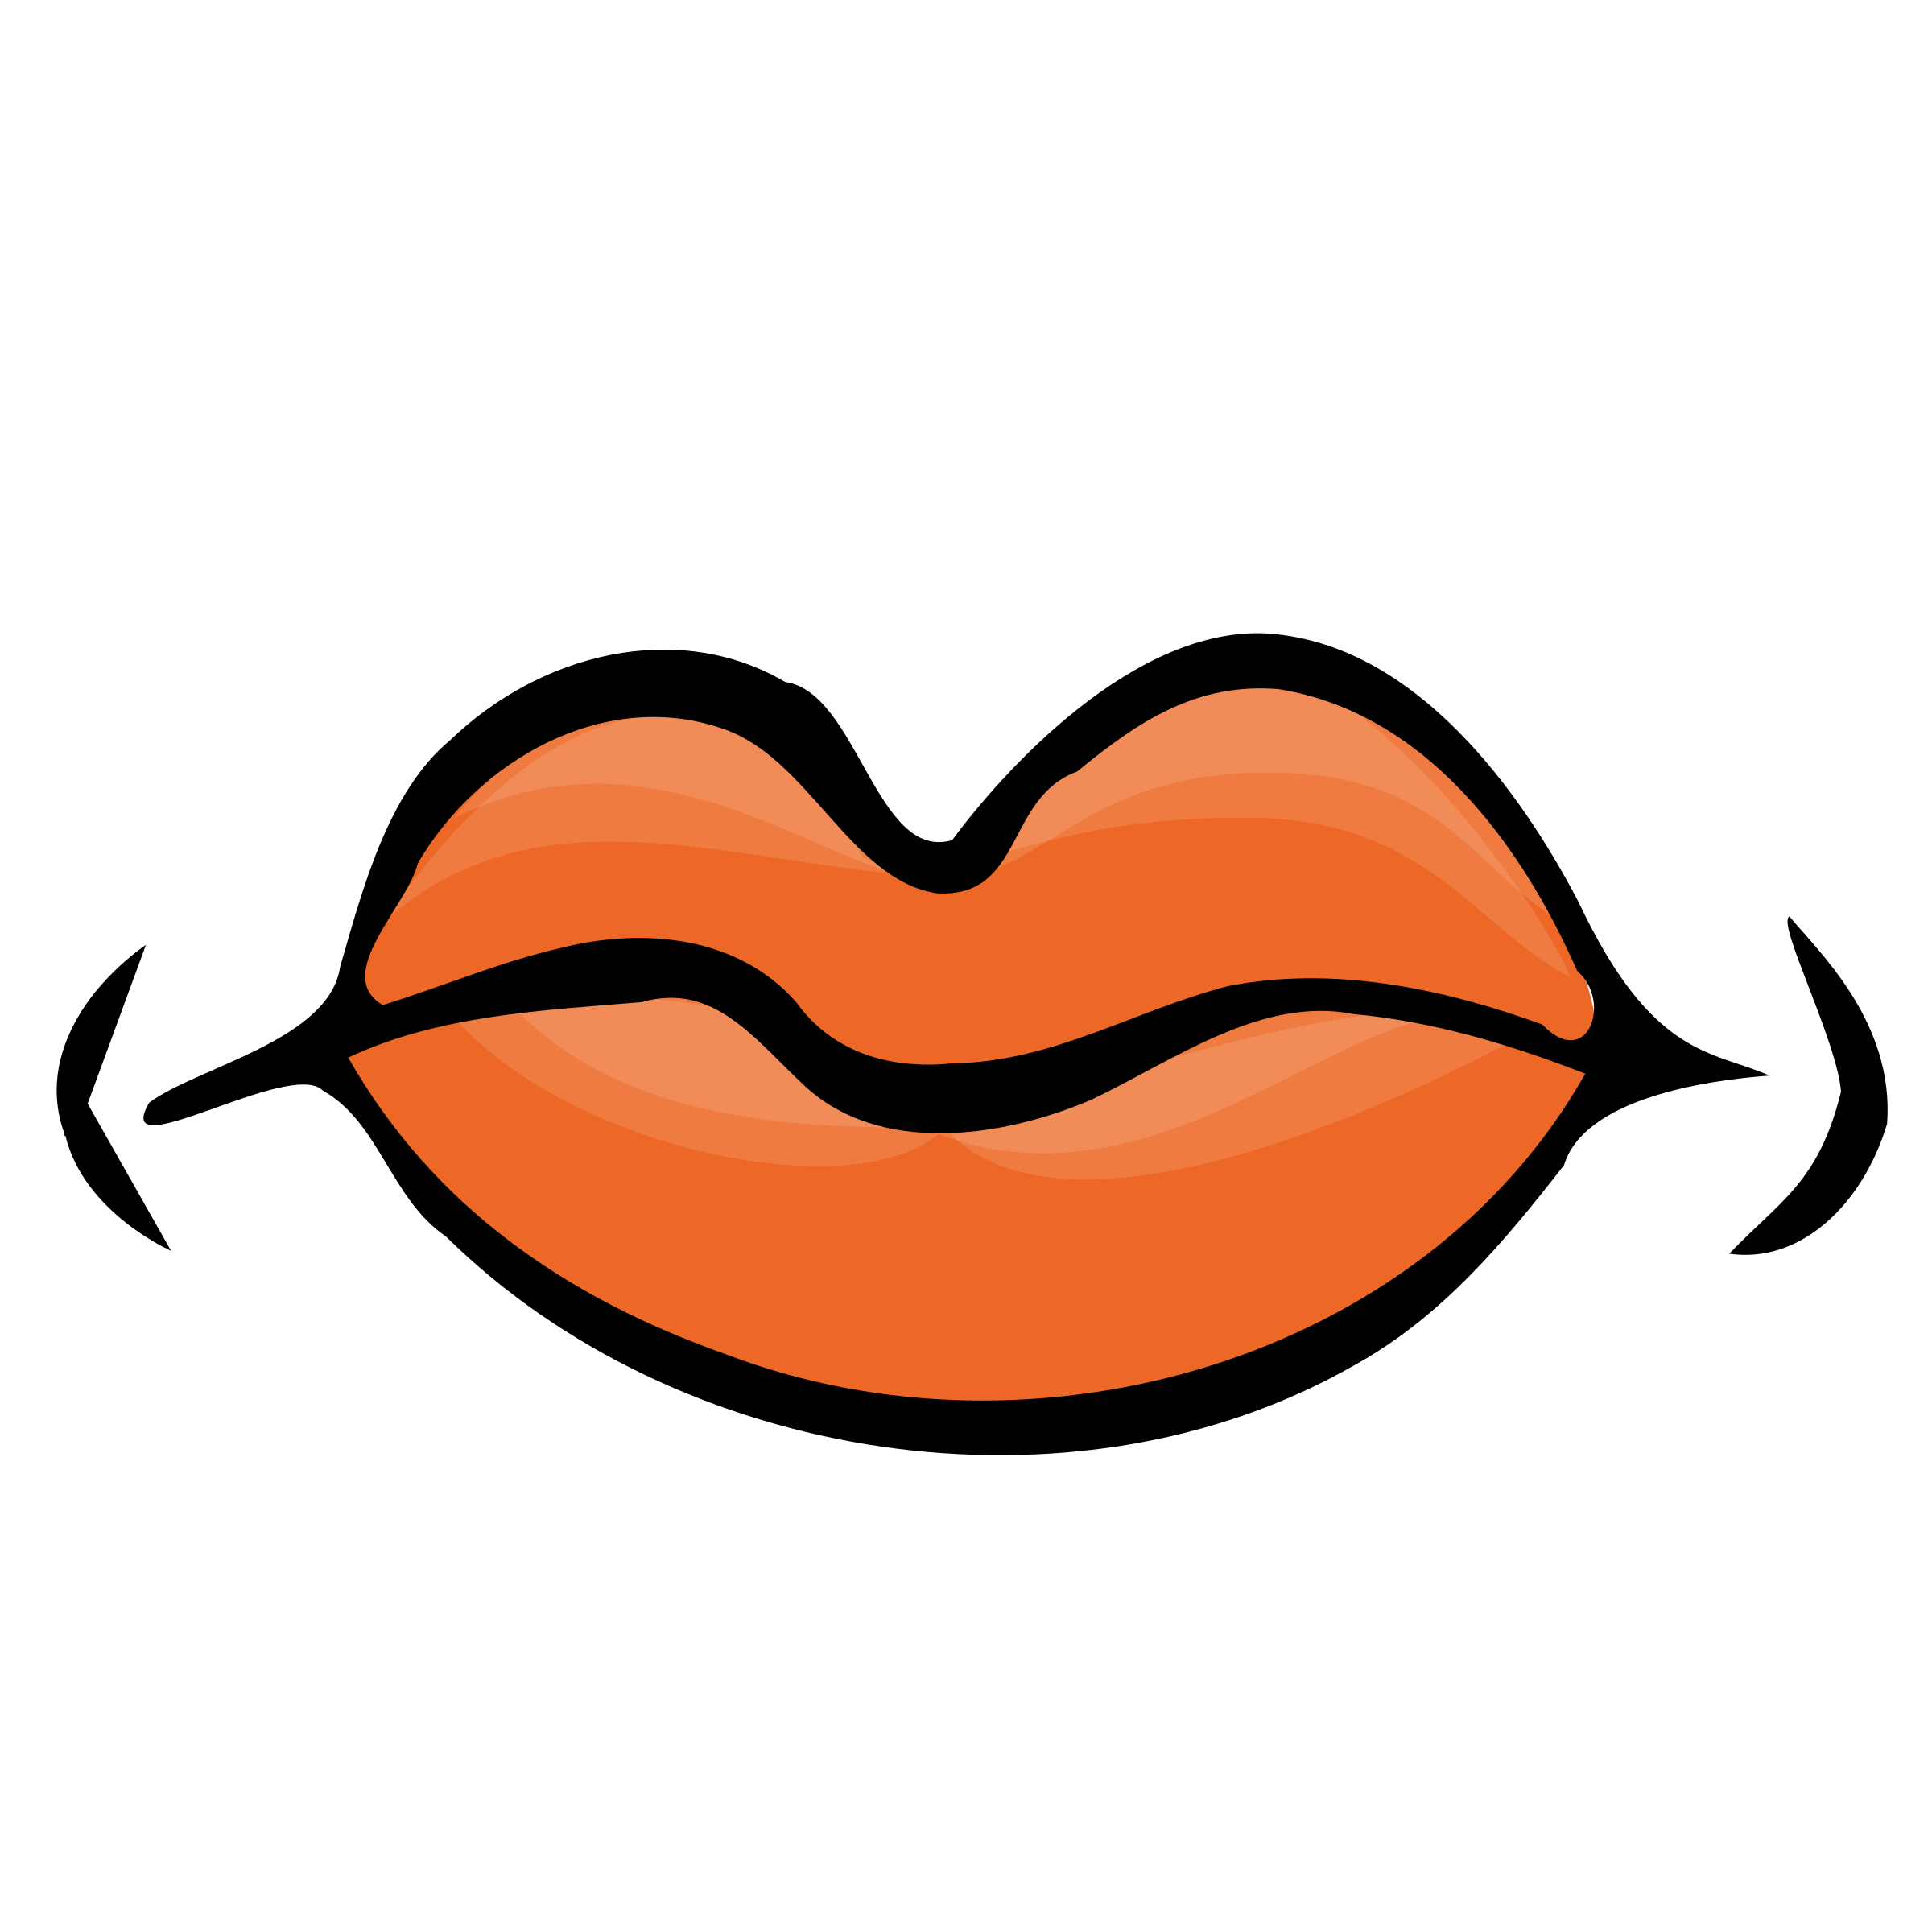 image transparent Lips lip free on. Closed clipart.